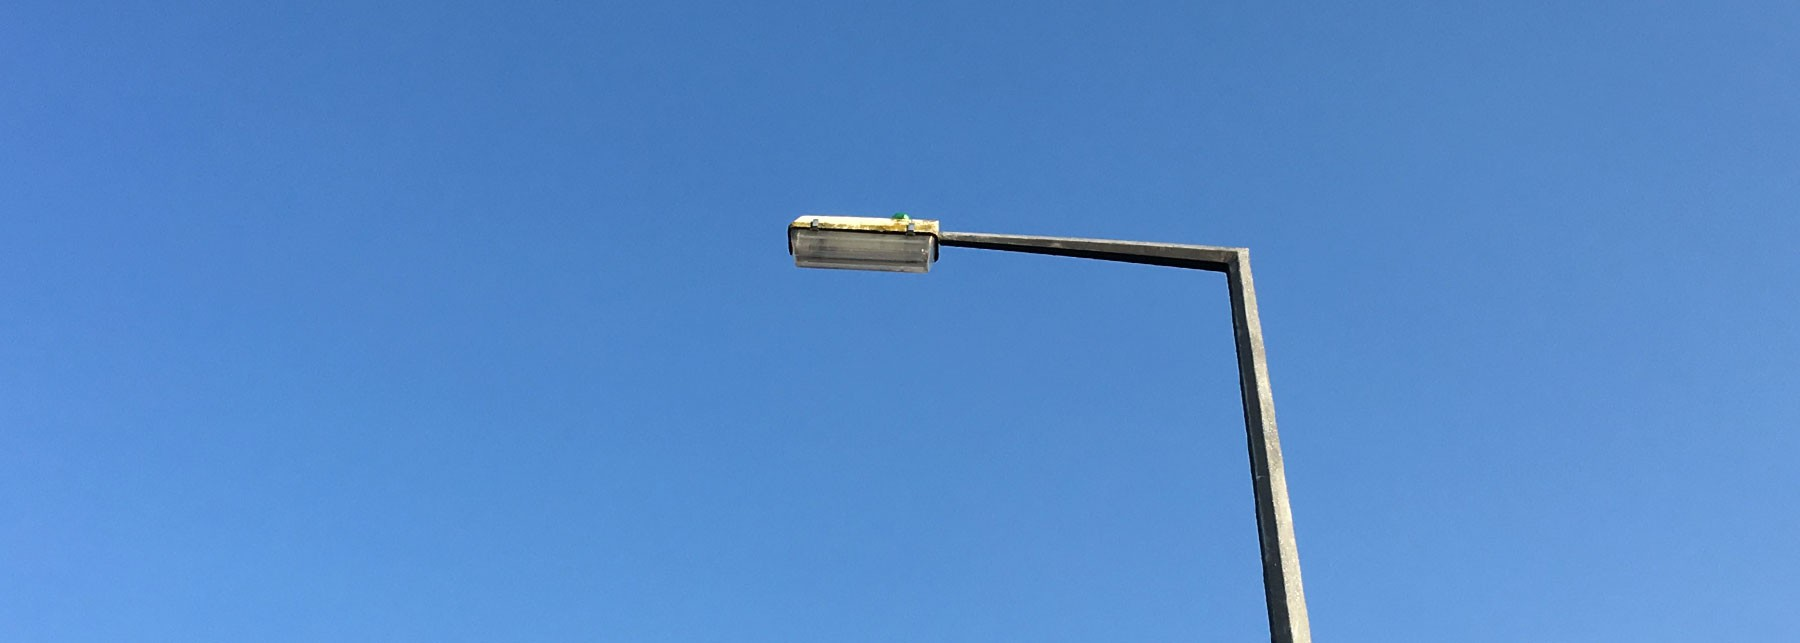 Street Lights - banner image